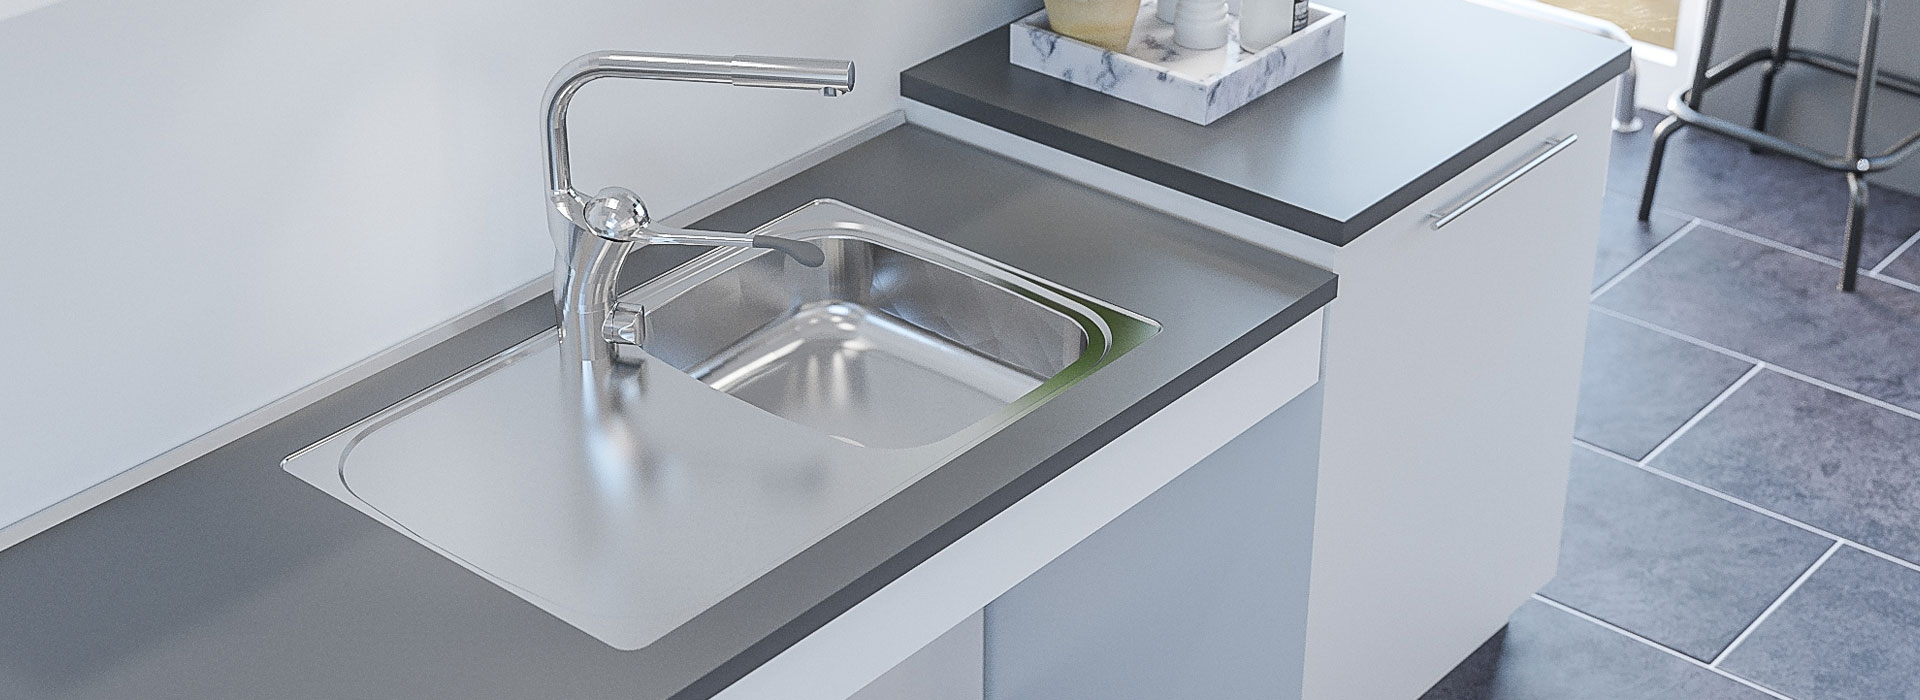 Inset Sinks With Shallow Bowl   Sinks & taps   Granberg ...